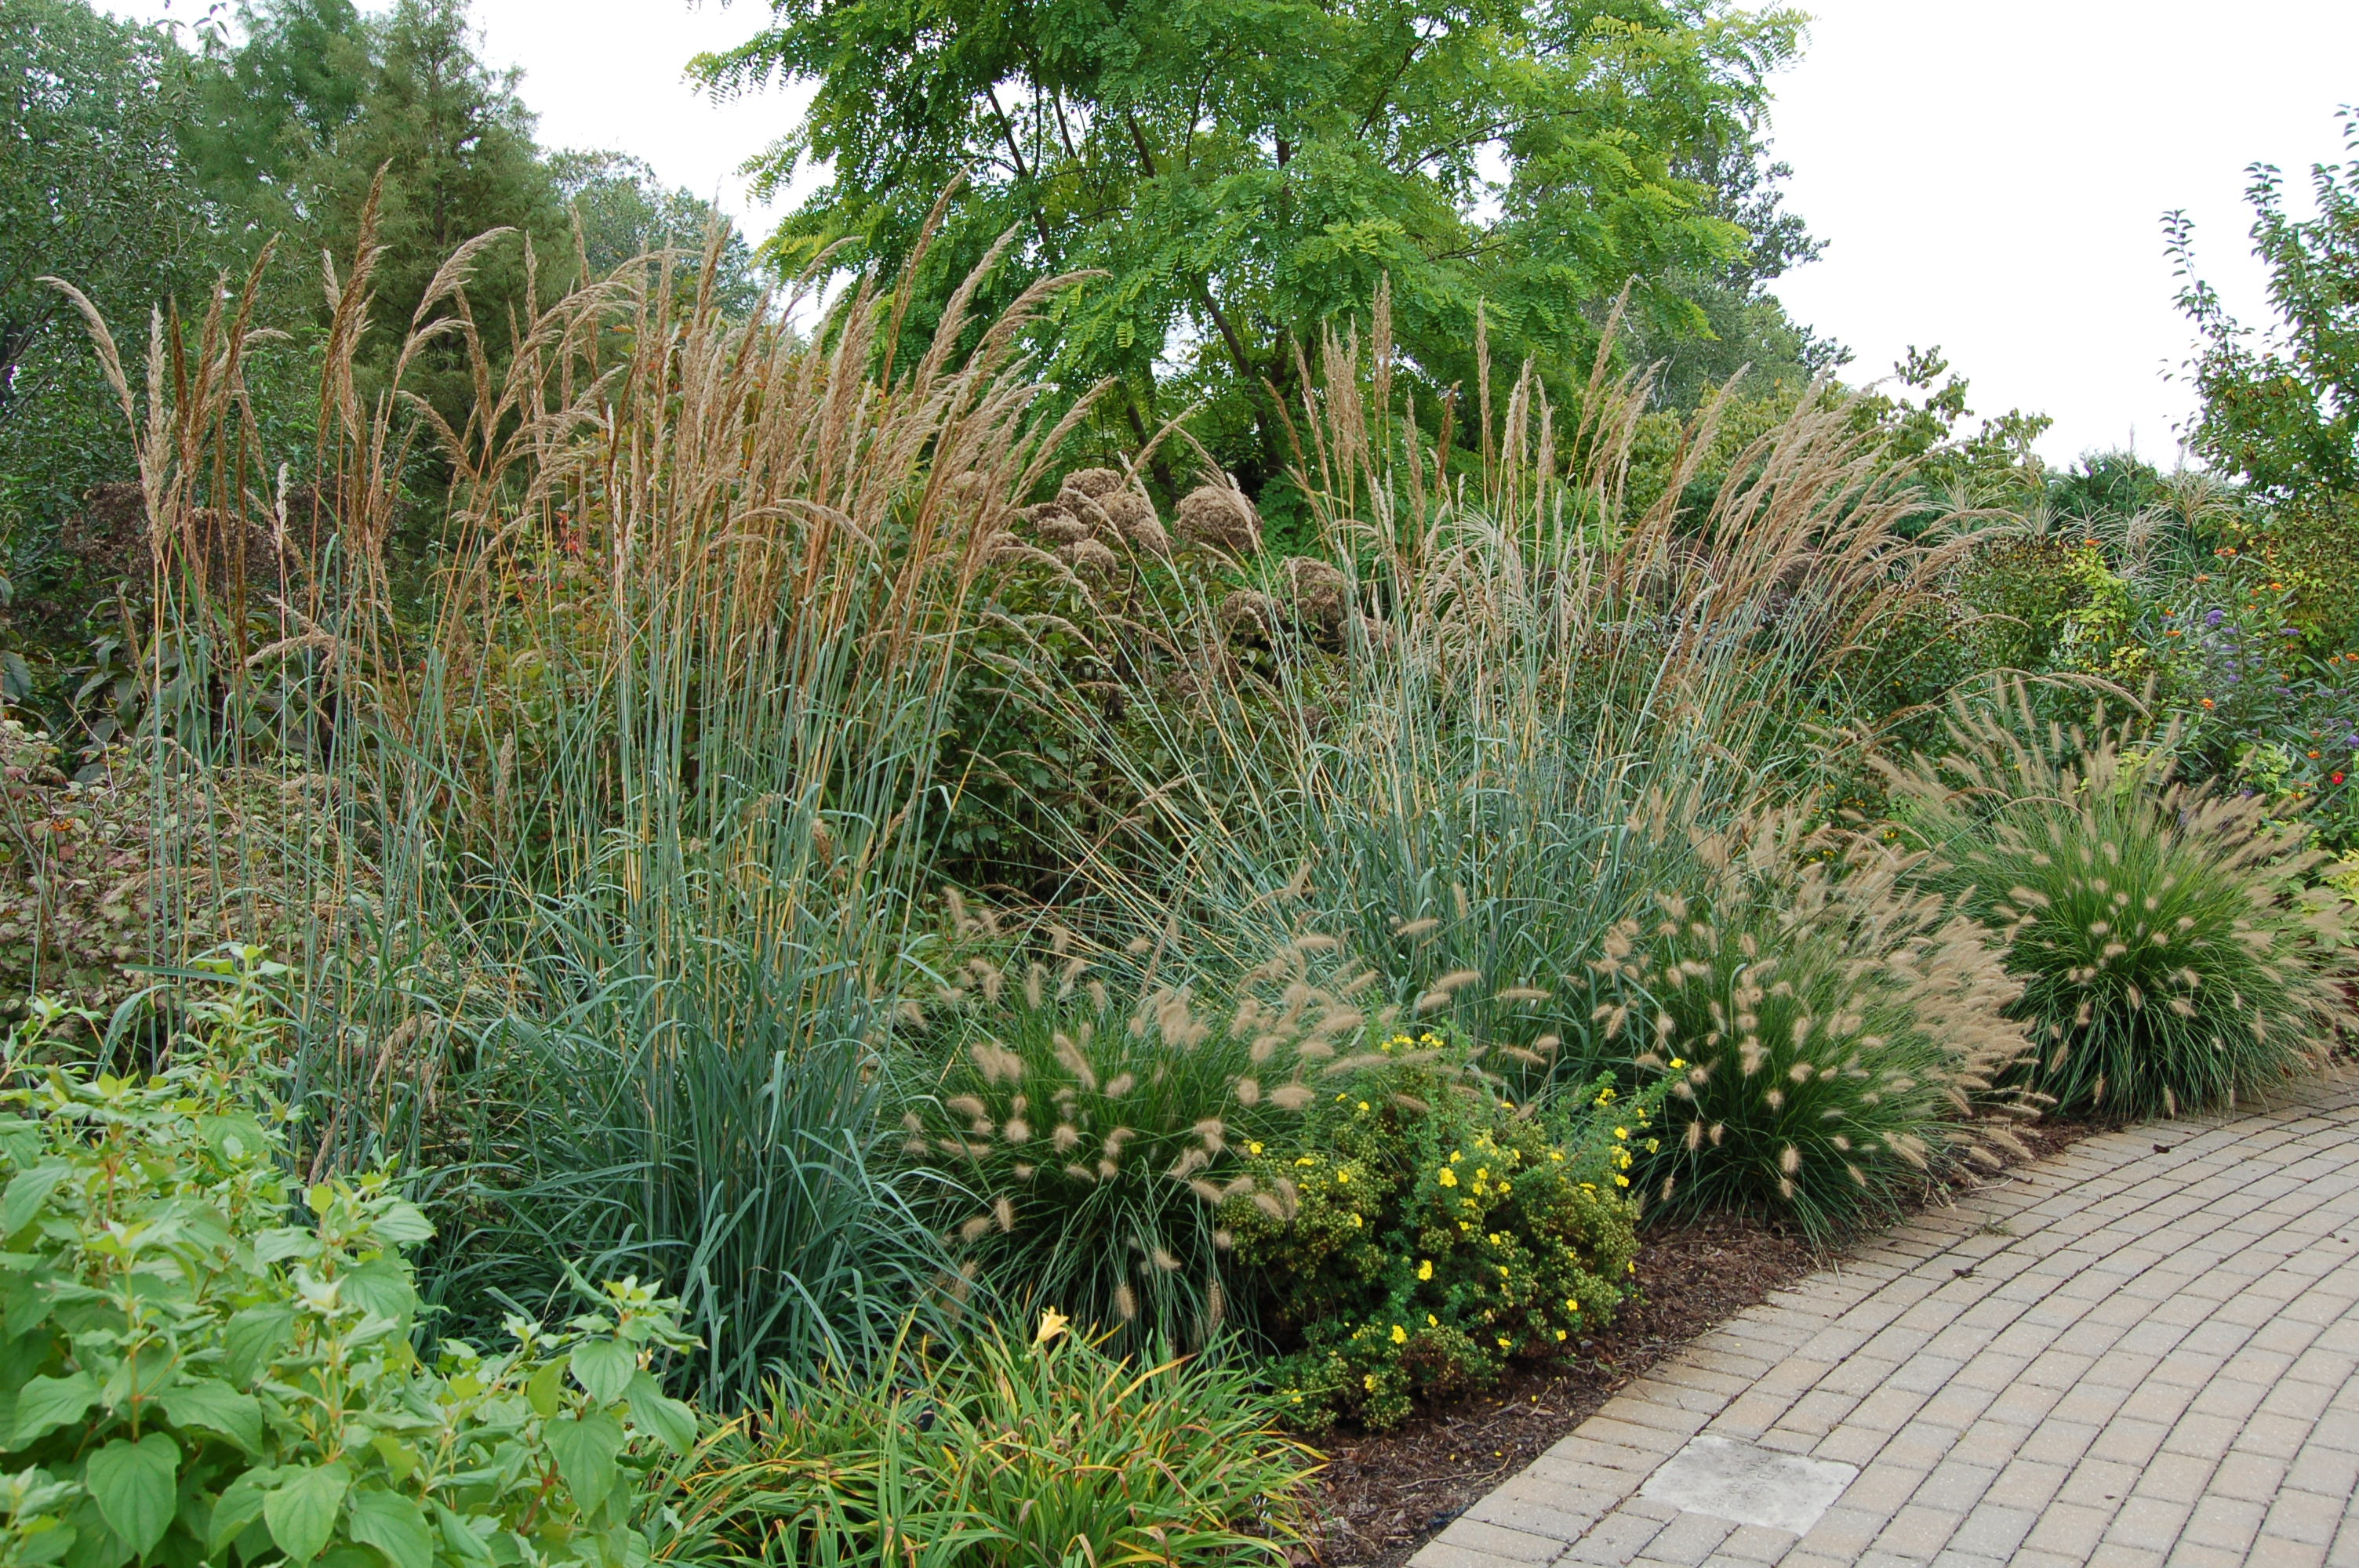 Landscaping with ornamental grasses for Best ornamental grasses for landscaping